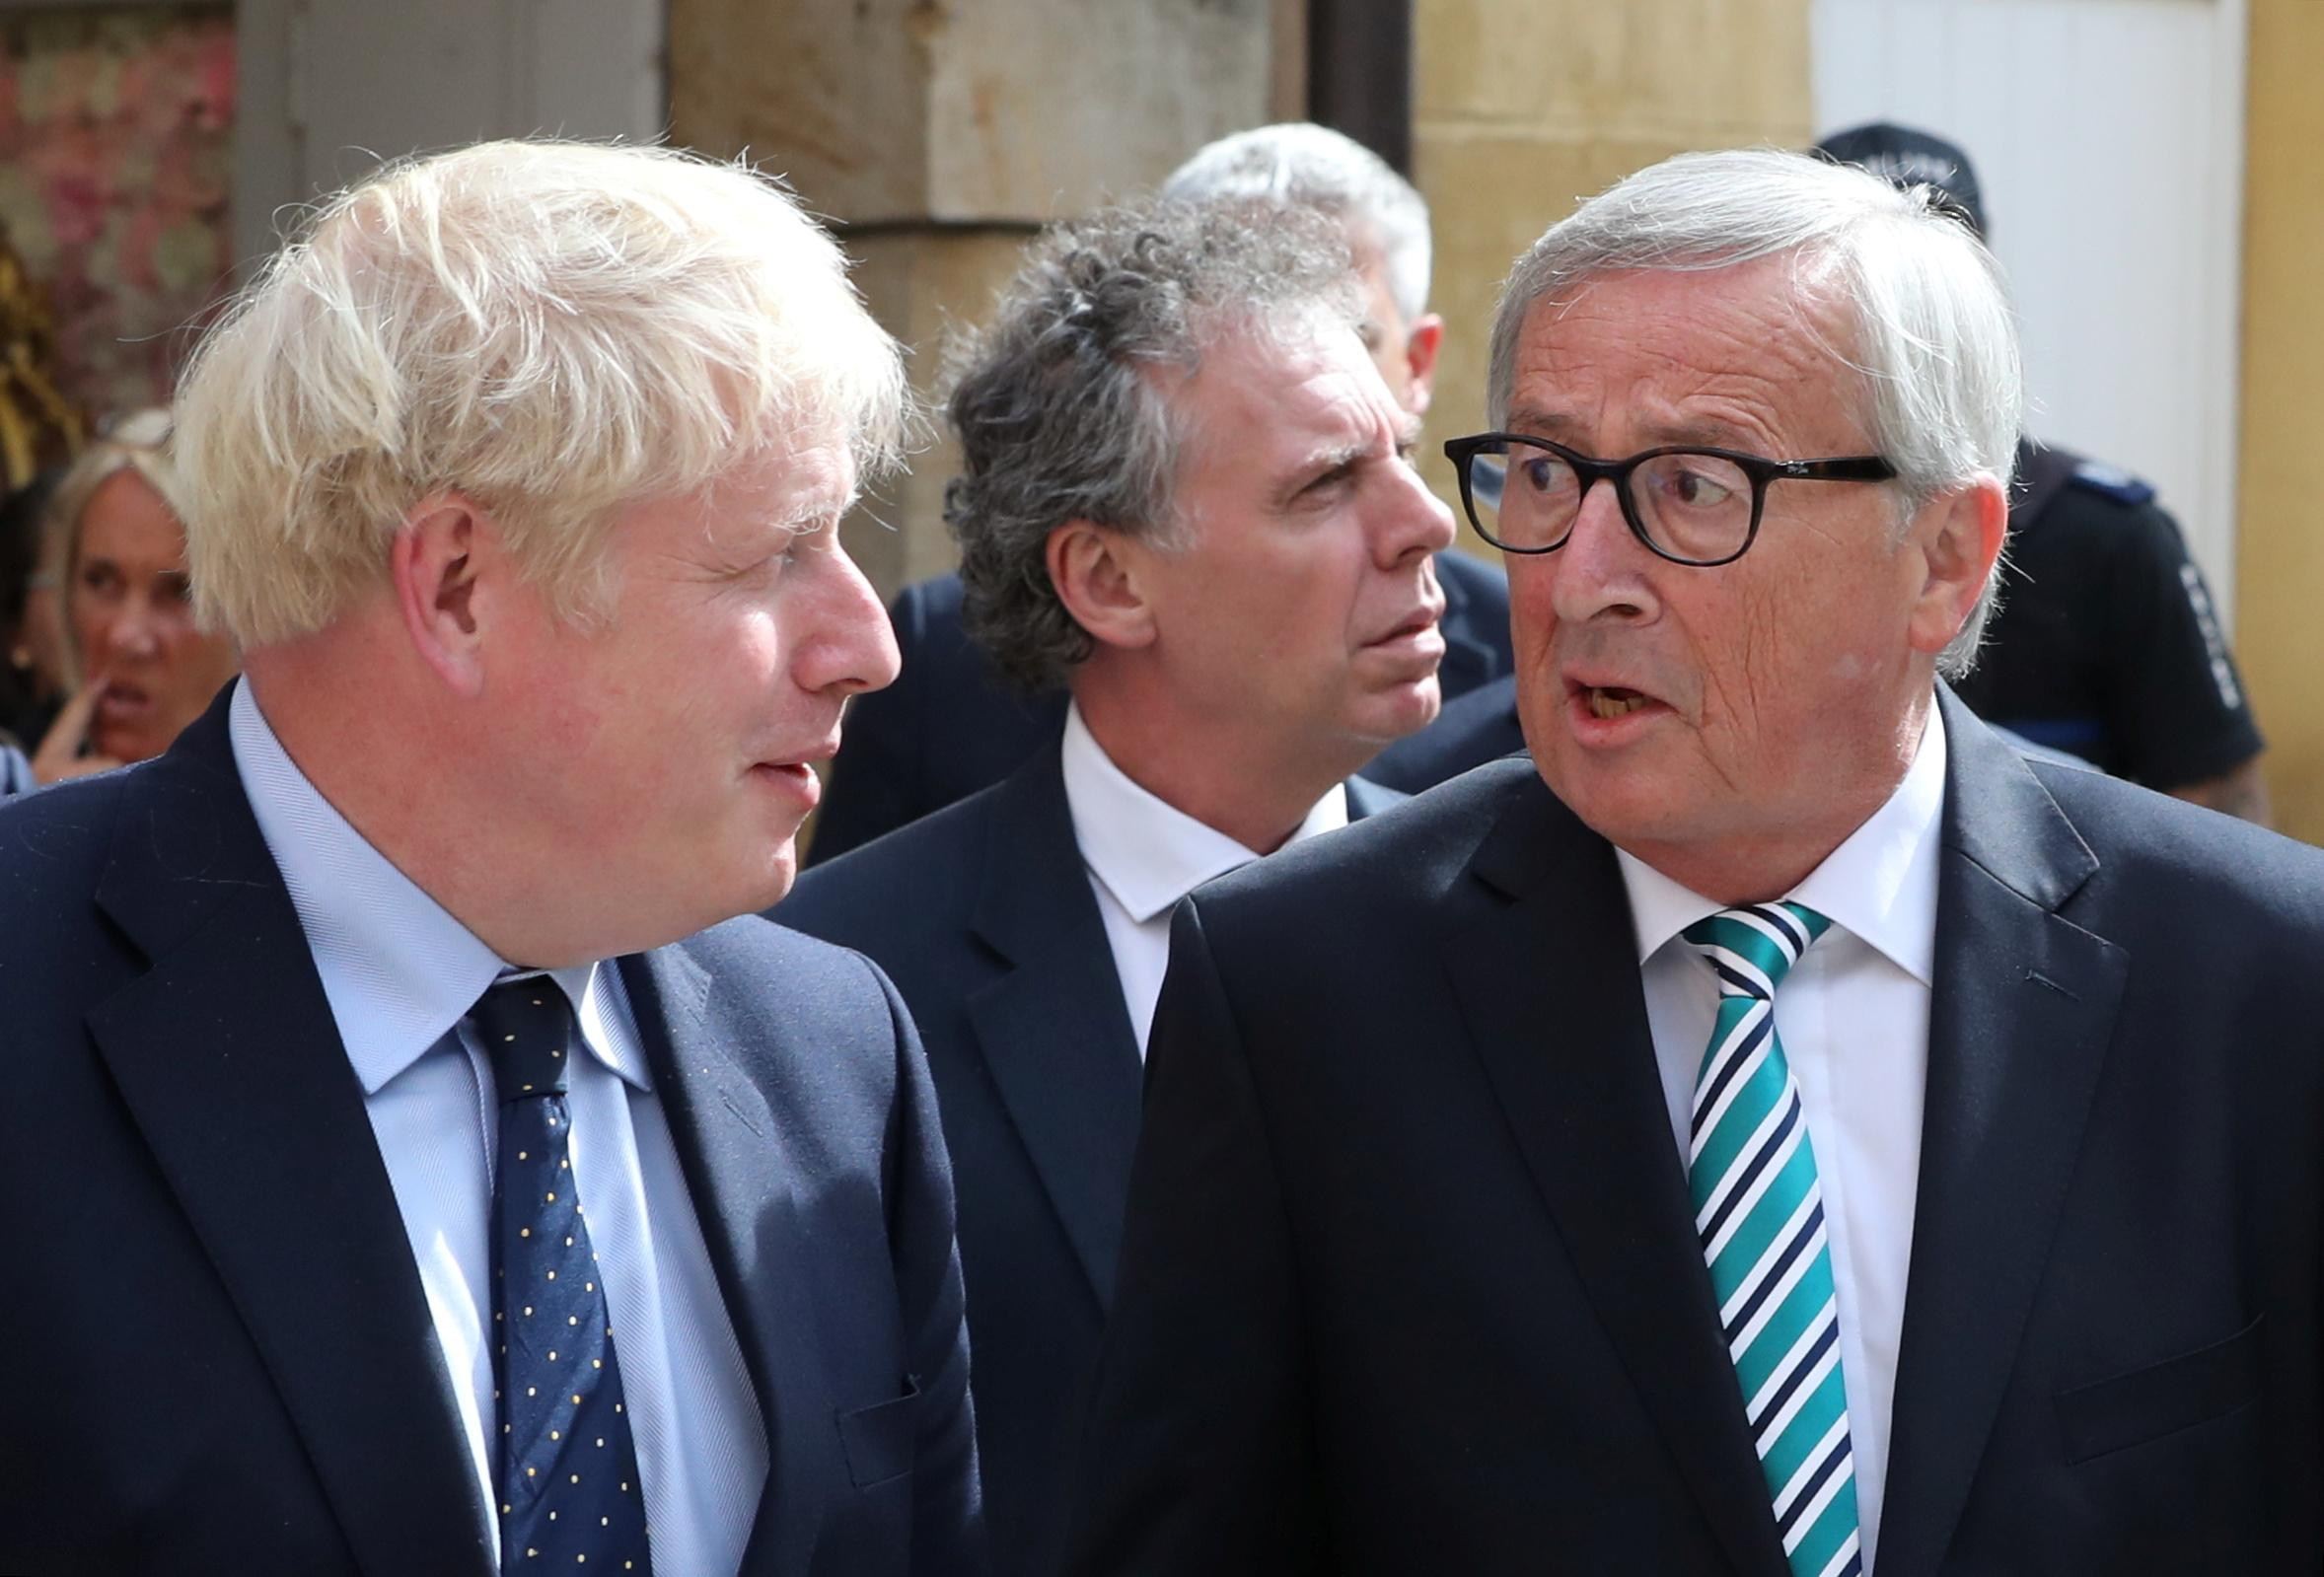 UK's Johnson buffeted in Luxembourg, says Brexit deal emerging